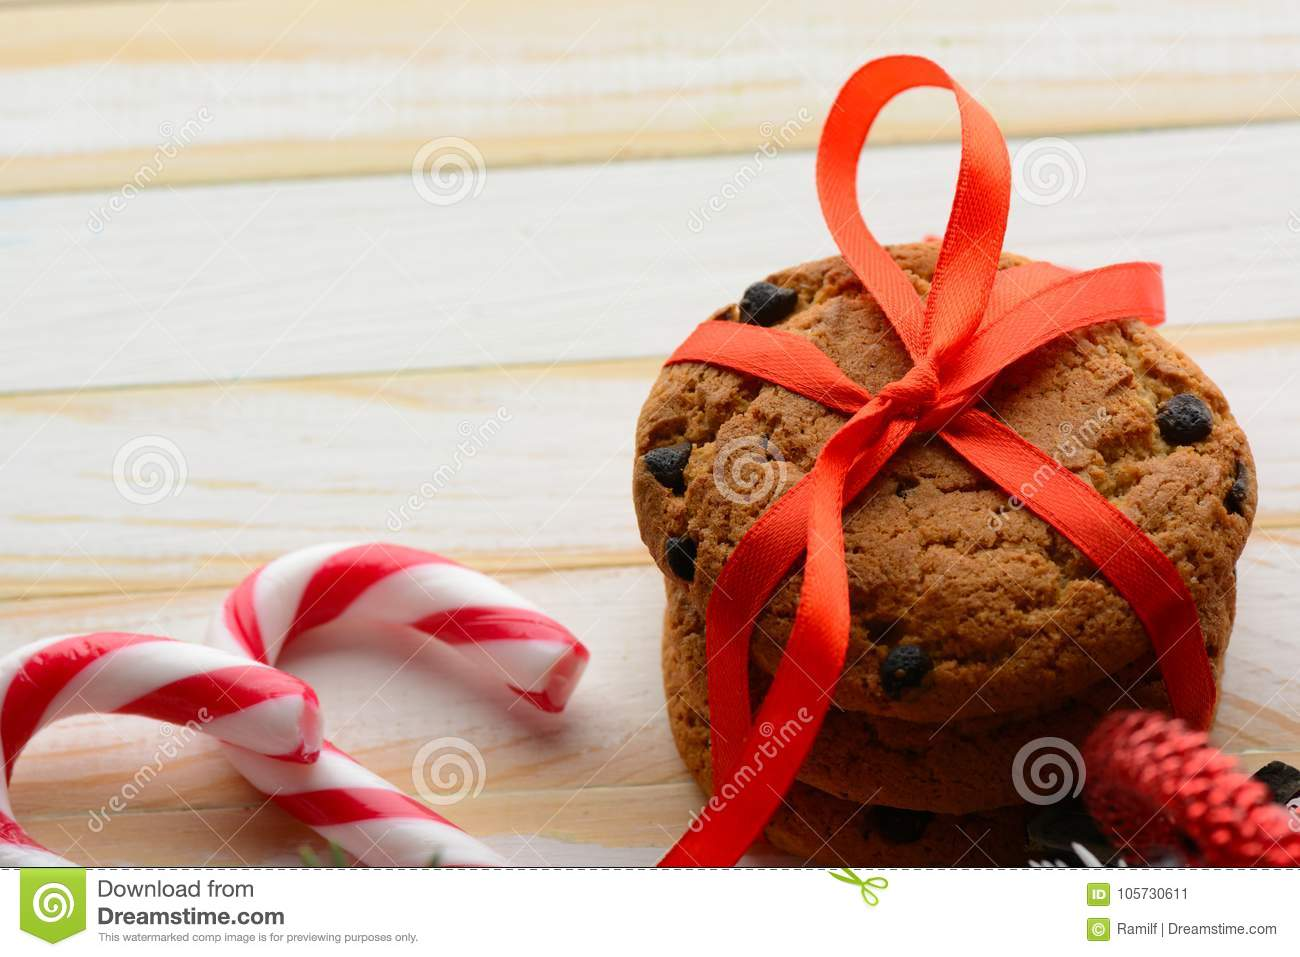 Chocolate Chip Cookies And Candy Canes Stock Image Image Of